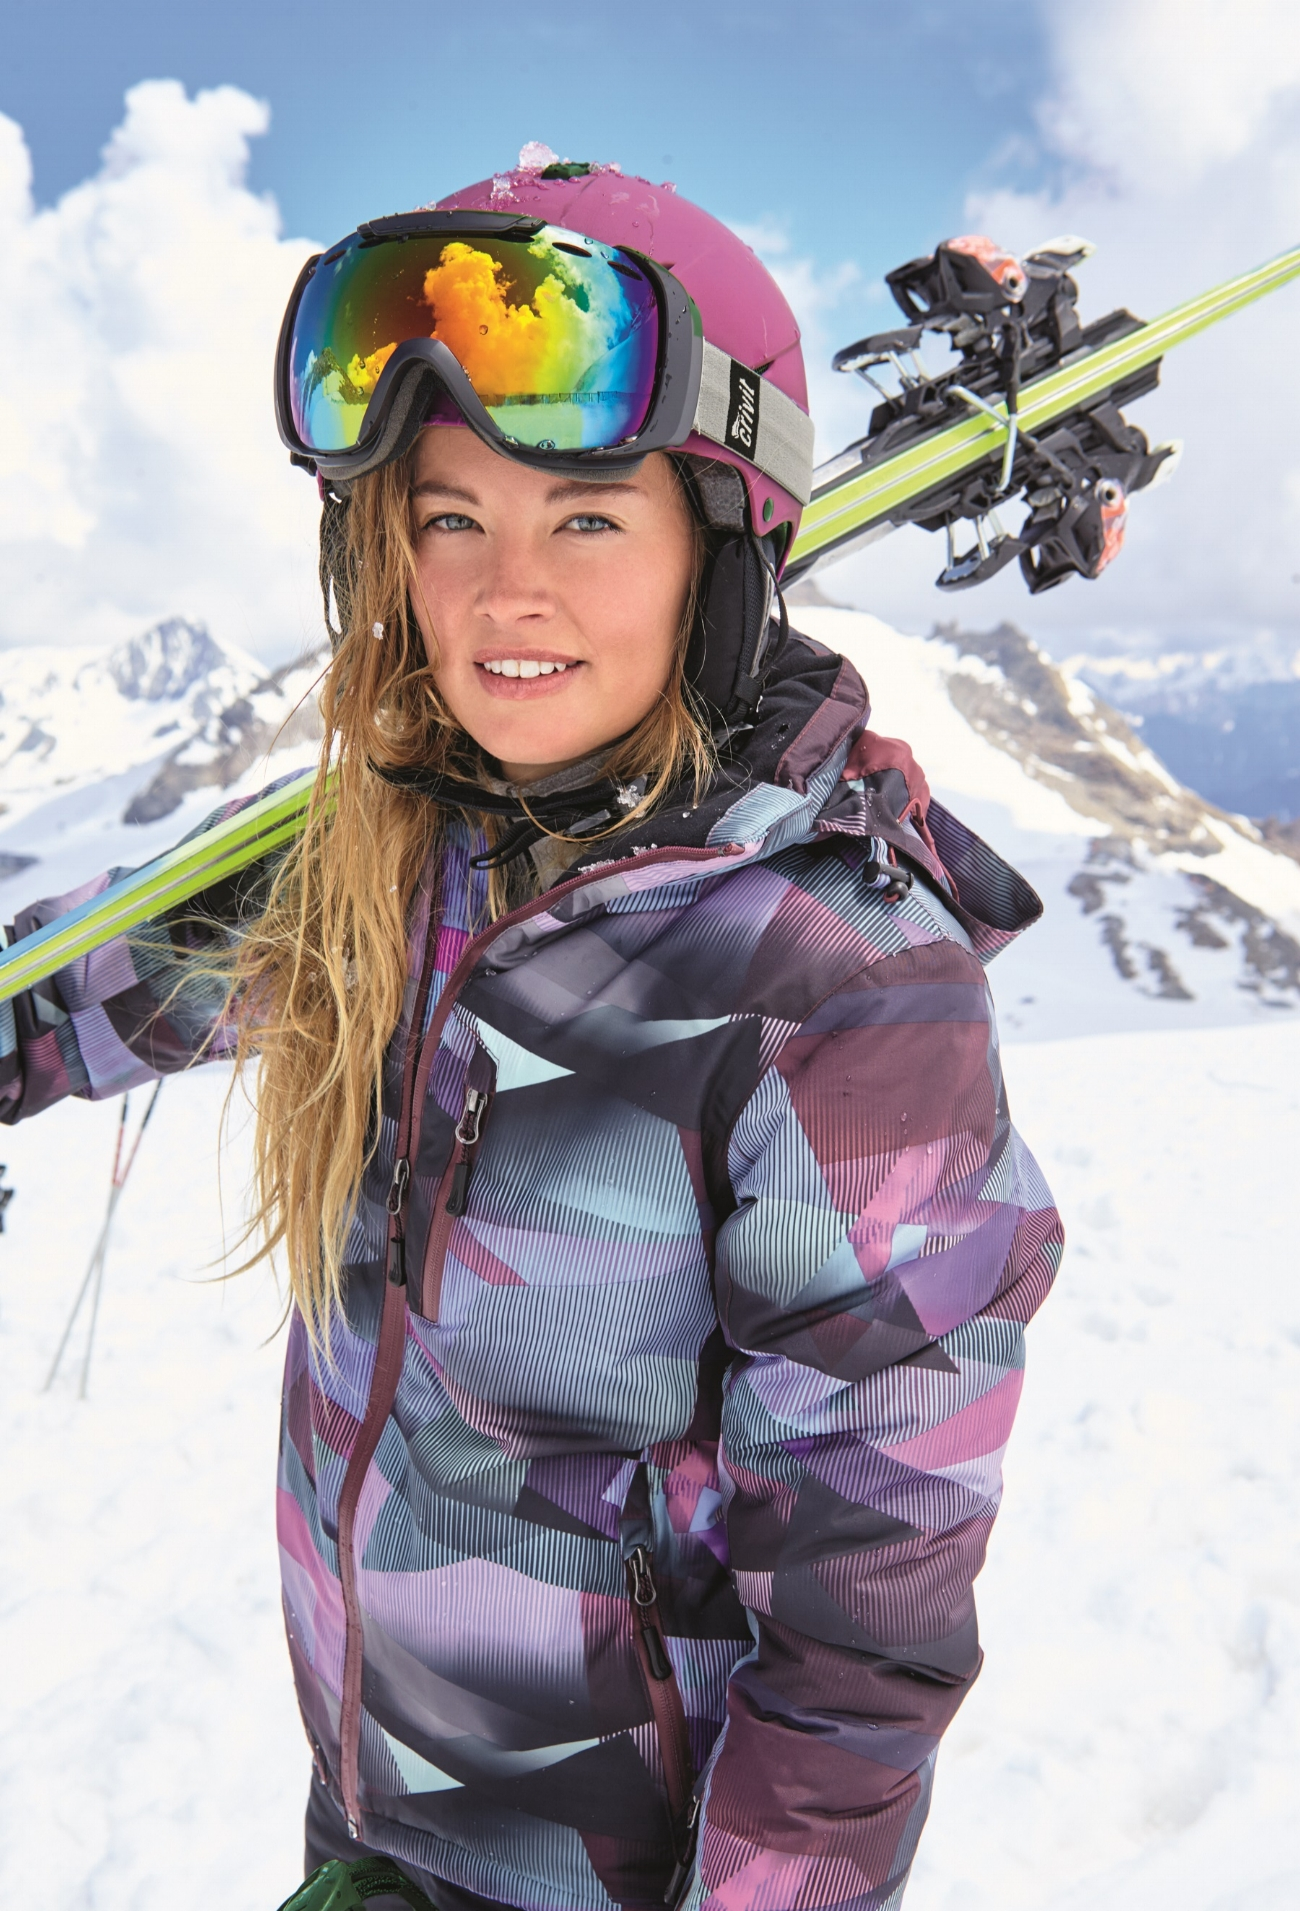 Calling all snow bunnies - Lidl are launching a cool new ski range and we've got the scoop.